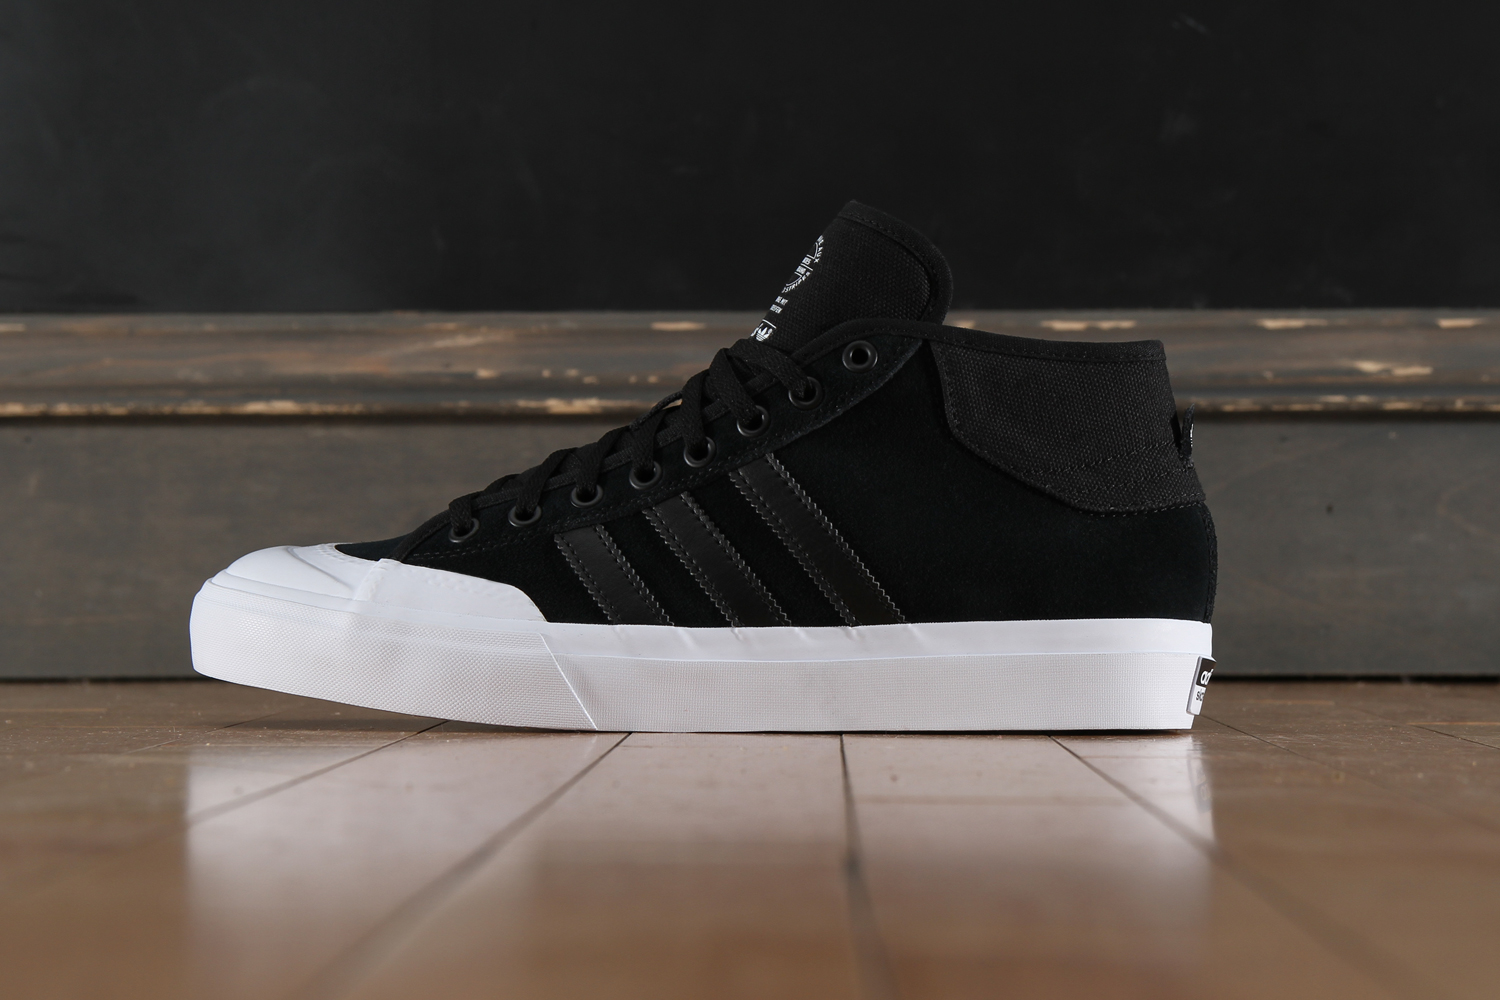 adidas Transforms the Nizza Into the Skate-Ready Matchcourt Mid